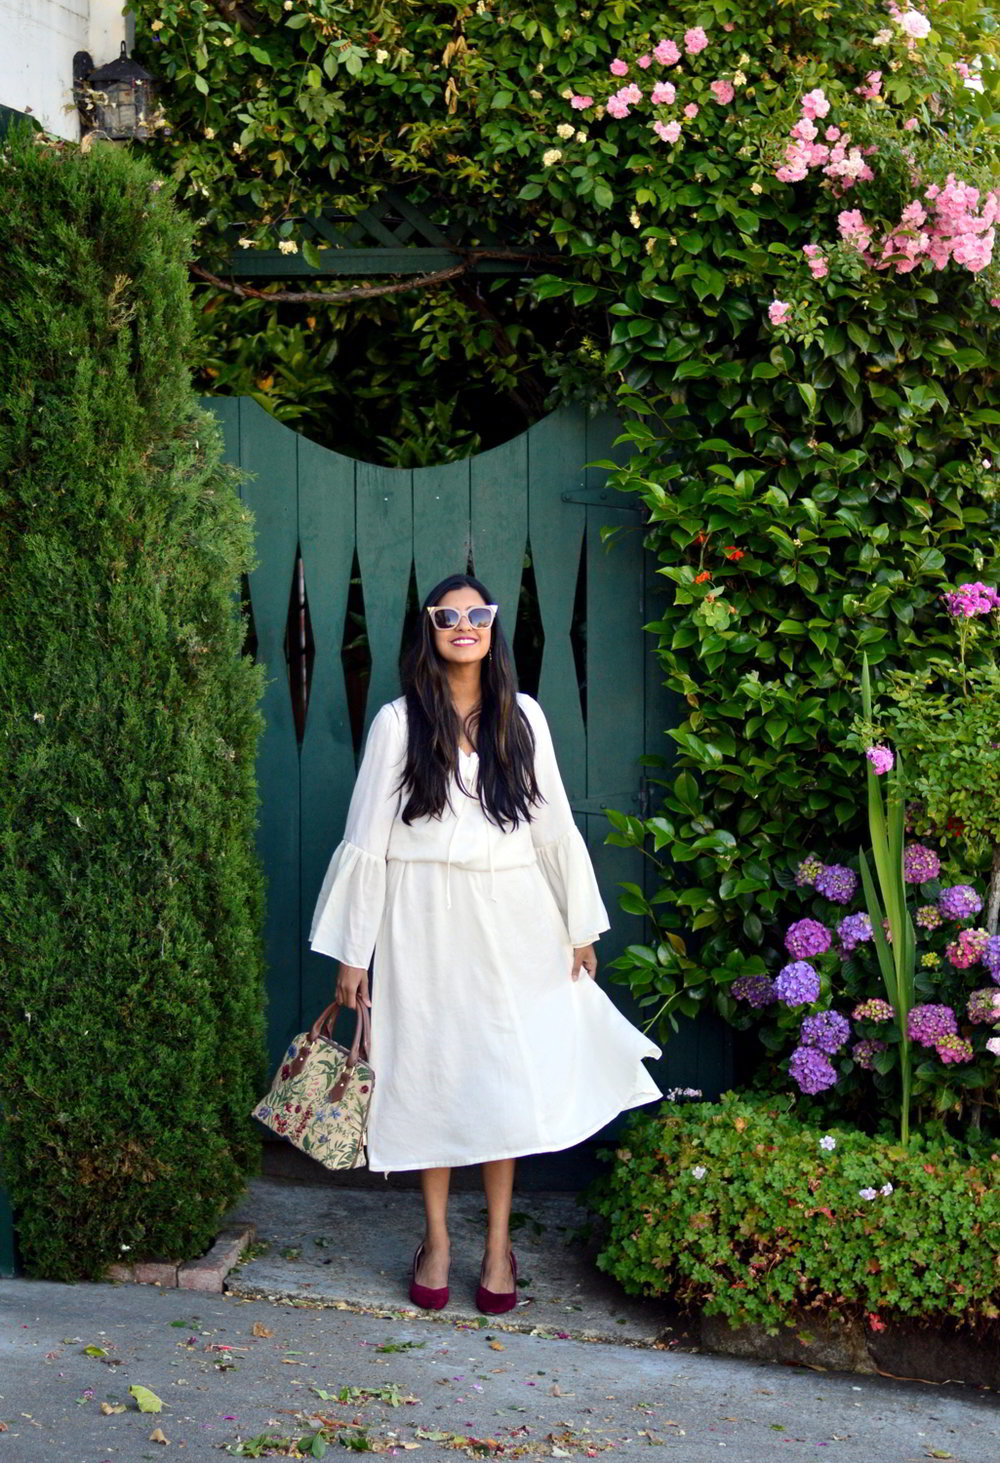 bell-sleeves-white-summer-style-blogger-outfit-dress-floral-bag 5